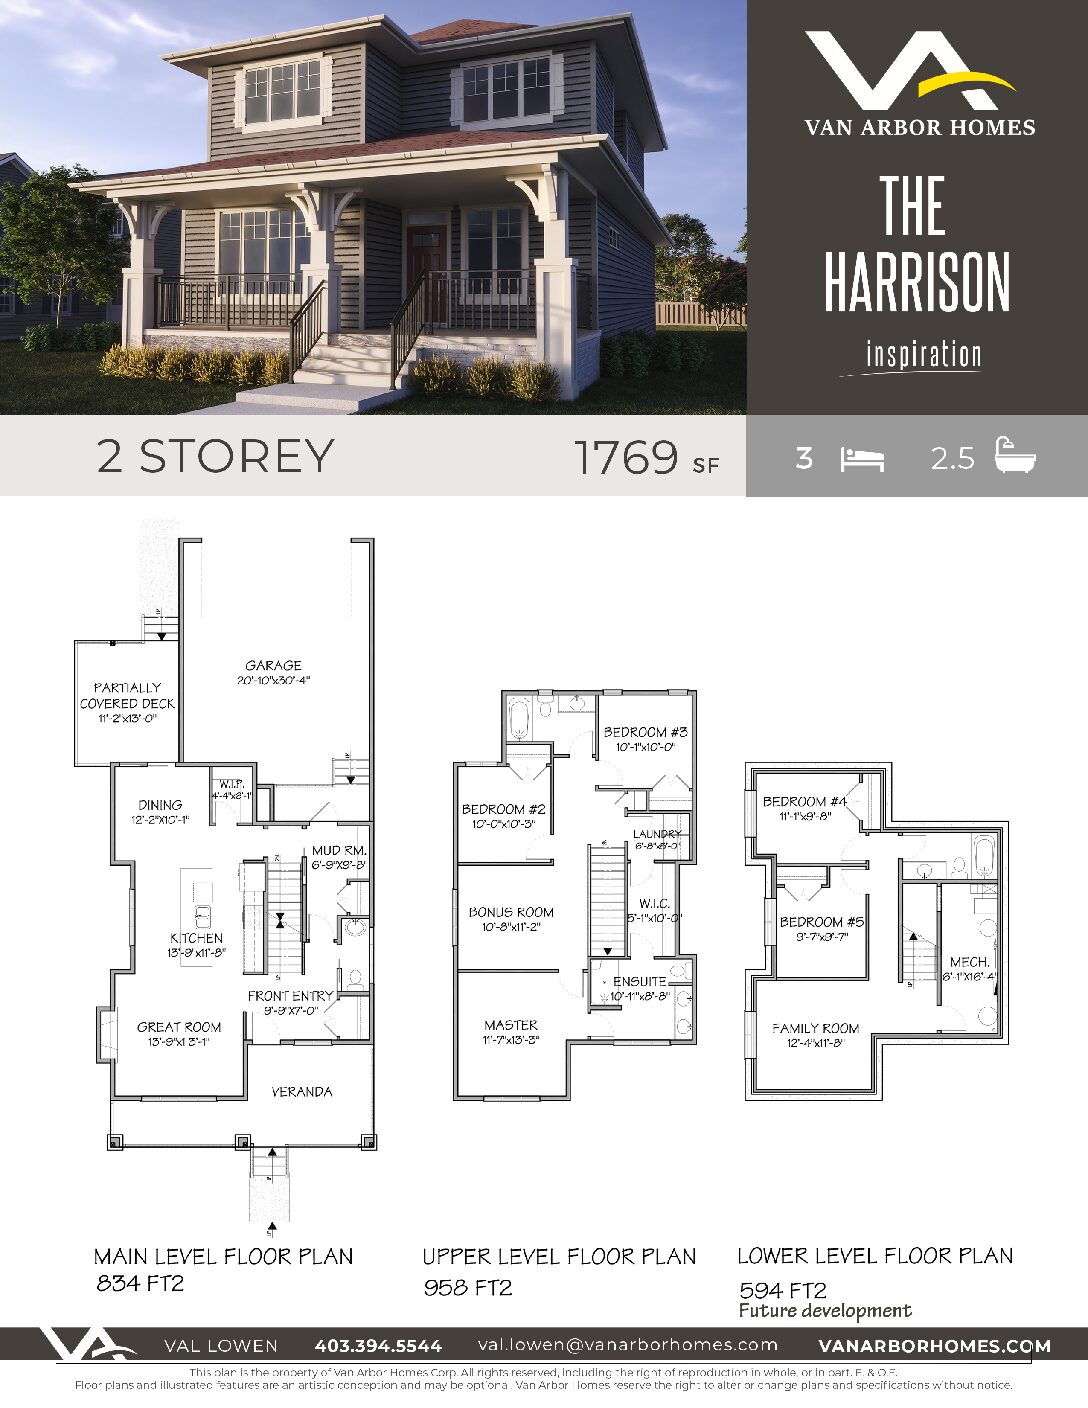 The Harrison – 355 Aquitania Blvd